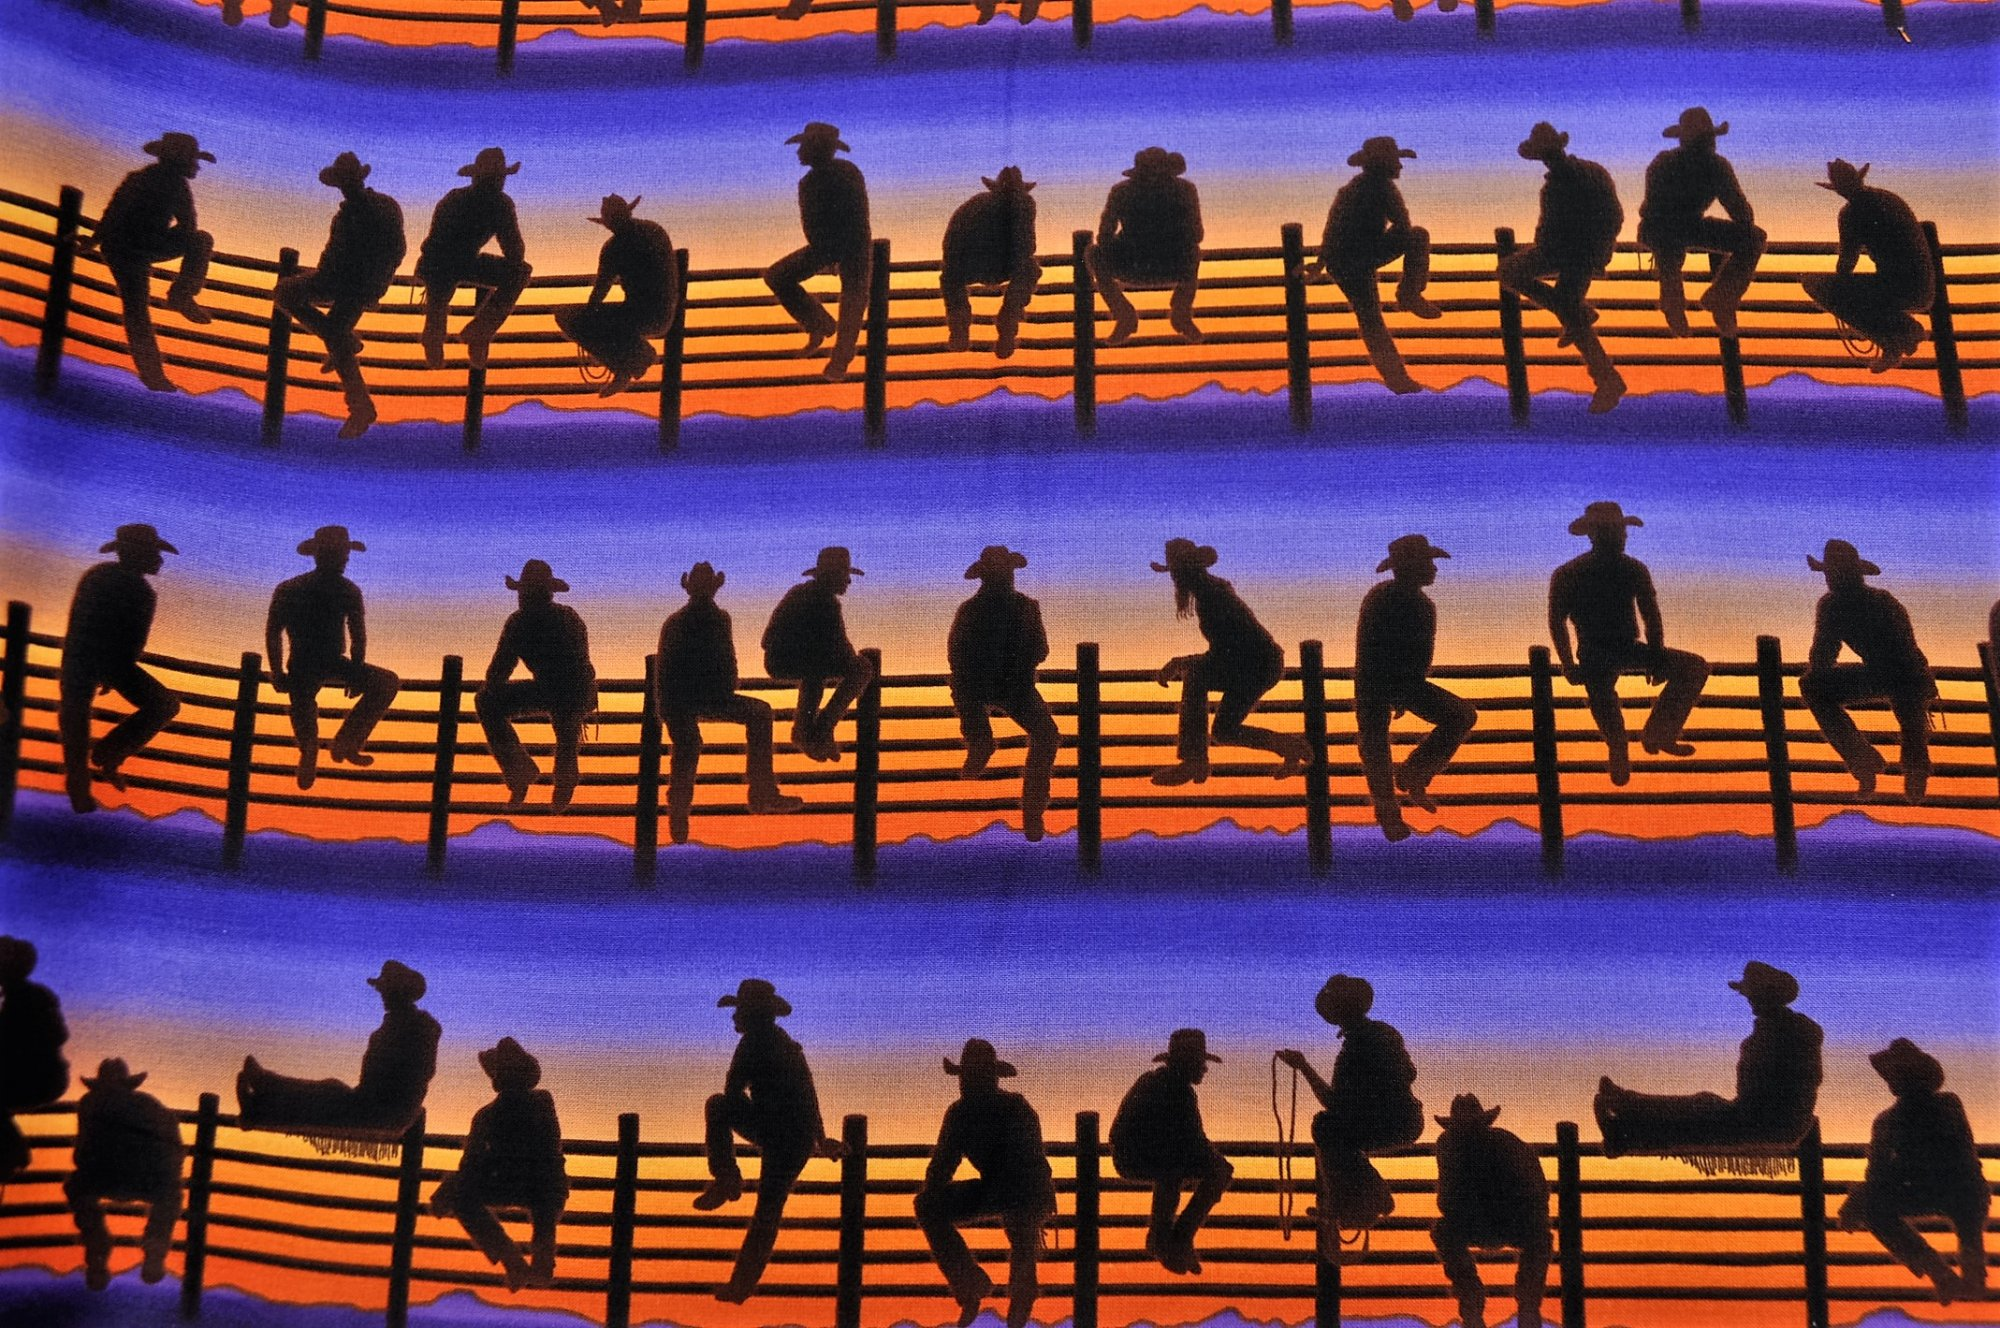 Best of the West Cowboys on Fence Sunrise